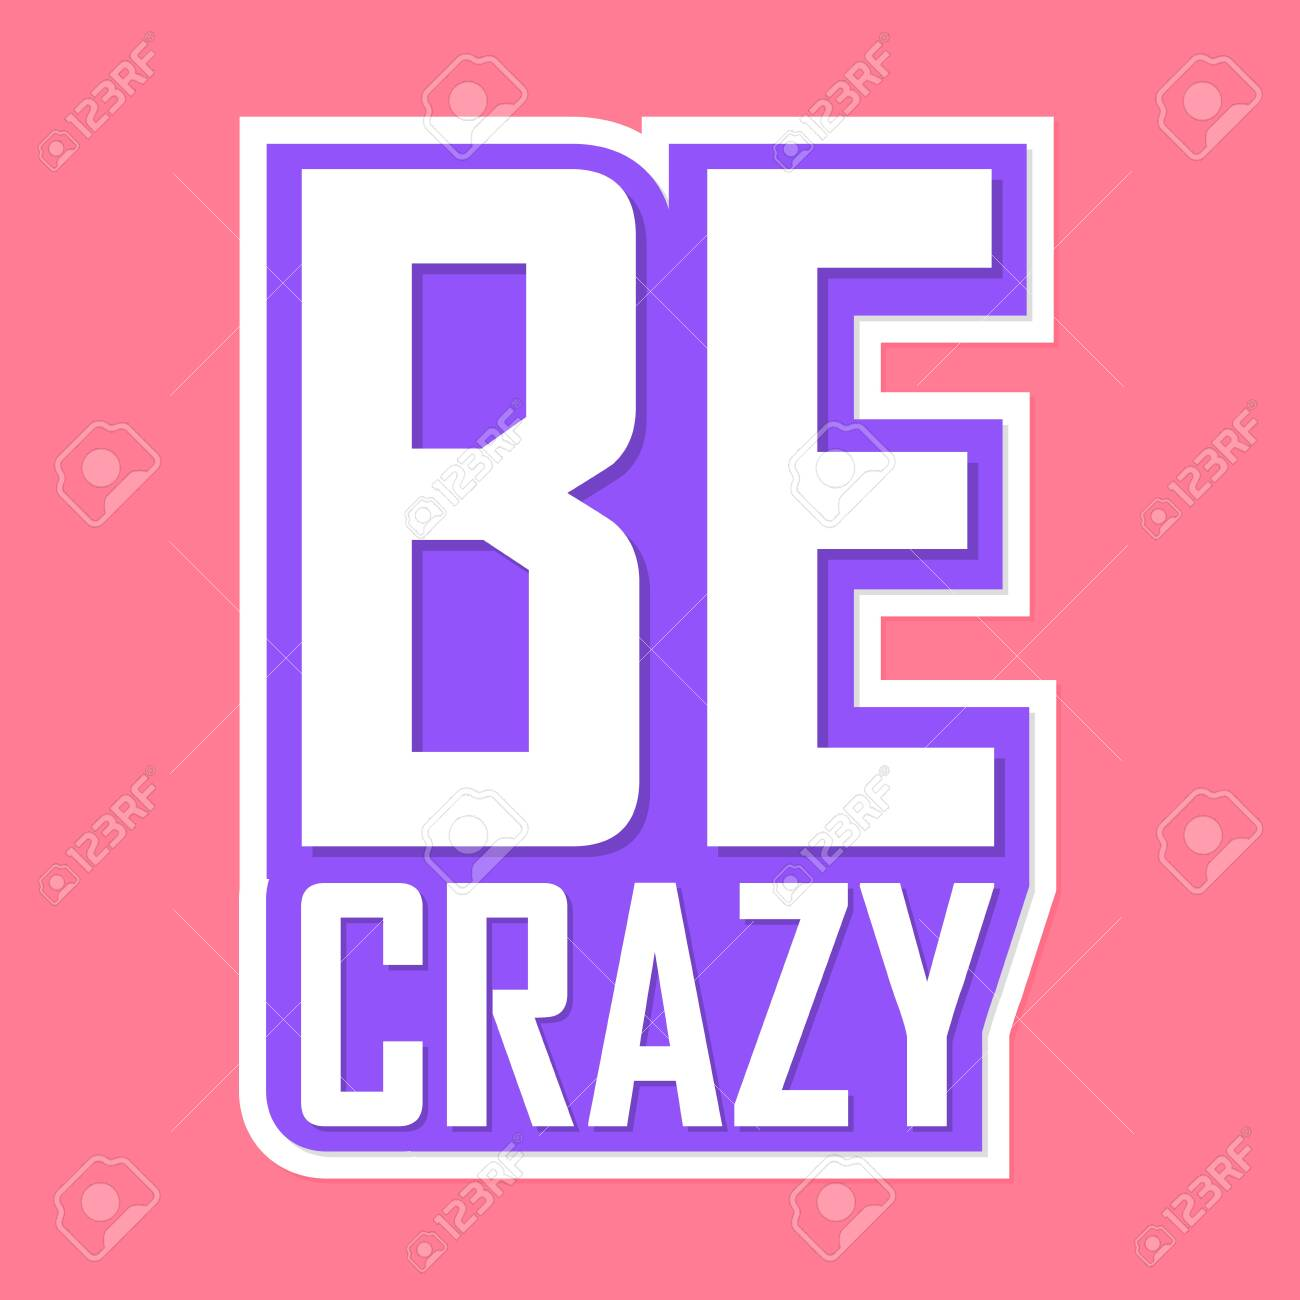 Be crazy, isolated sticker, words design template, vector illustration - 151805684